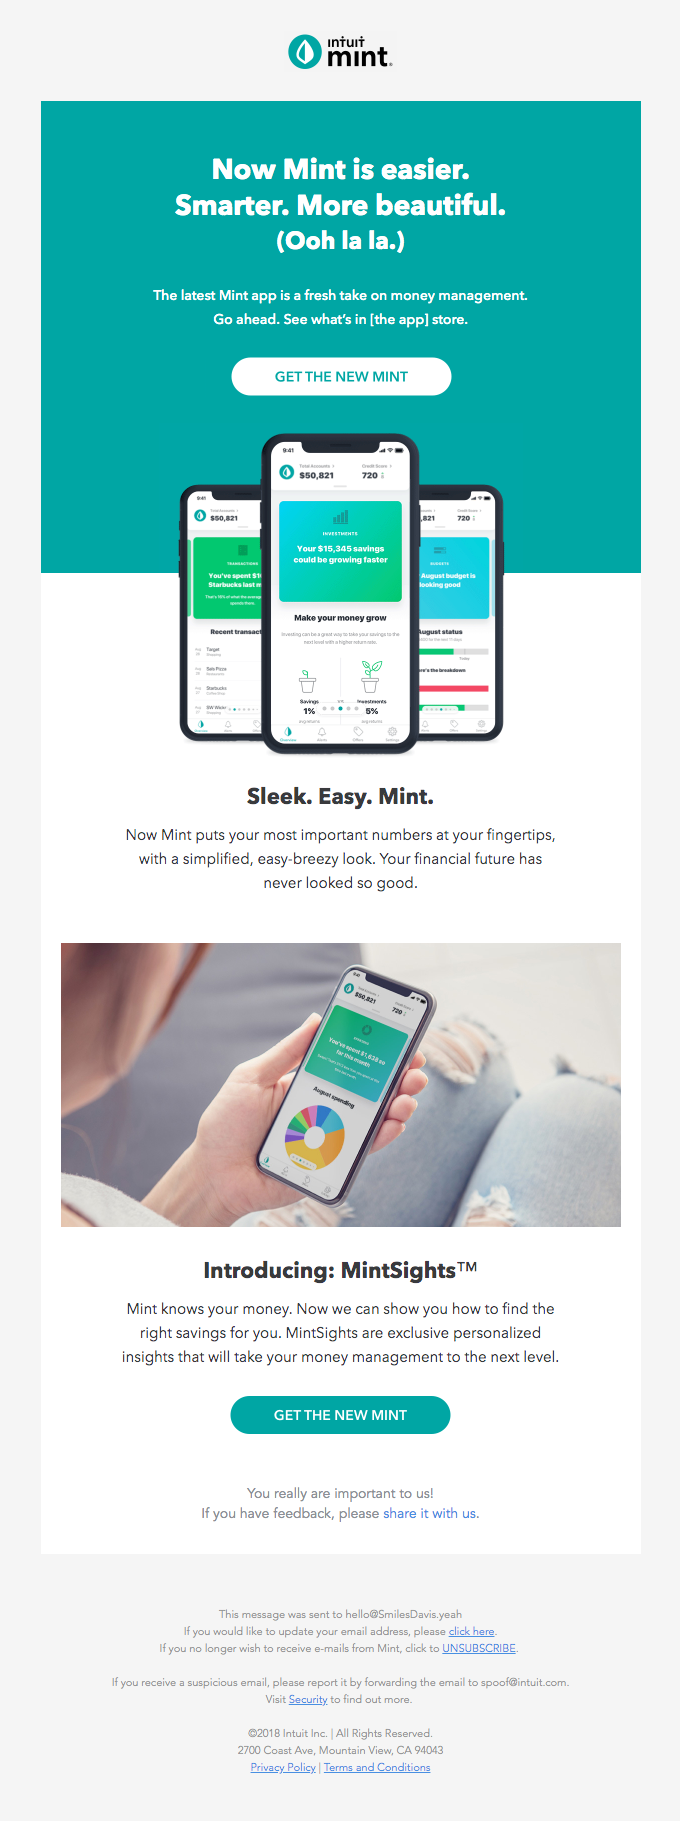 The New Mint. Smart. Sleek. Personalized.